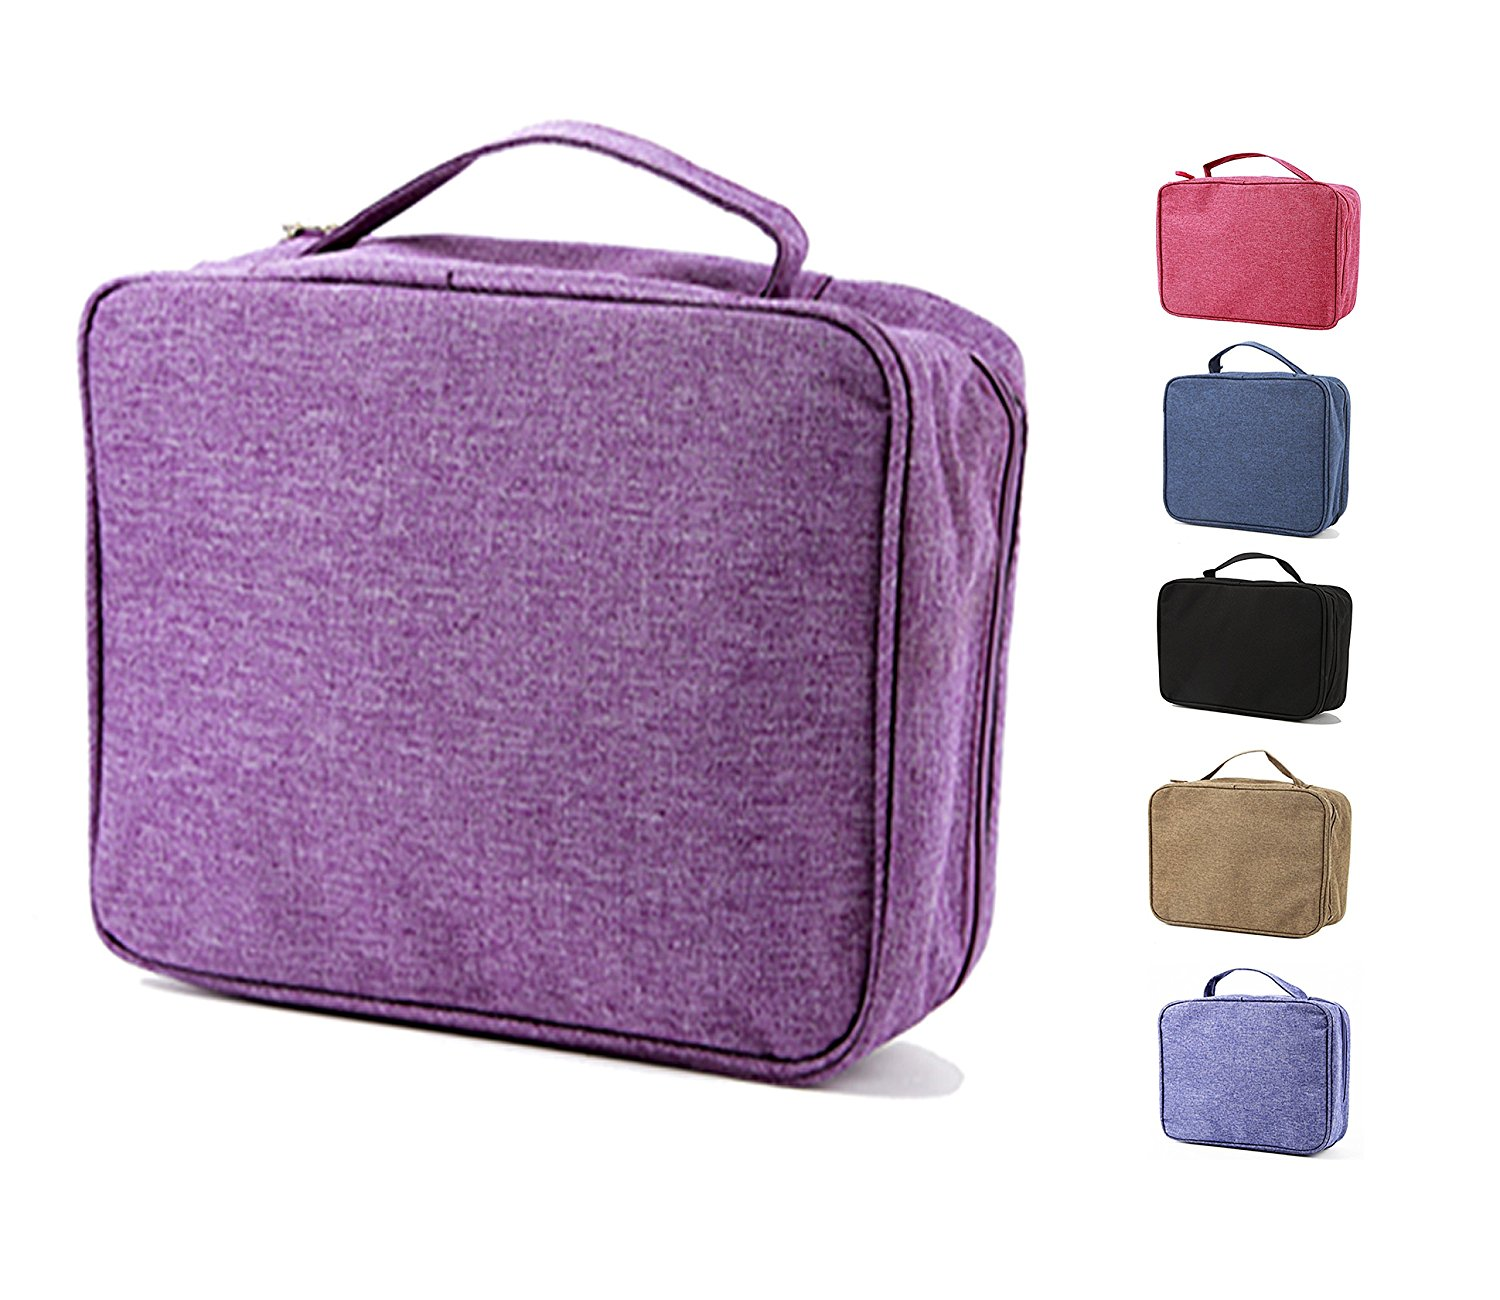 purifyou Classic Insulated Lunch Box - Compact, Easy Wash, Smooth Zipper & Lightweight - Tote Bag & Container, Lunch Bag for Men & Women - Lunchbox for Kids, Boys, Girls, & Adults